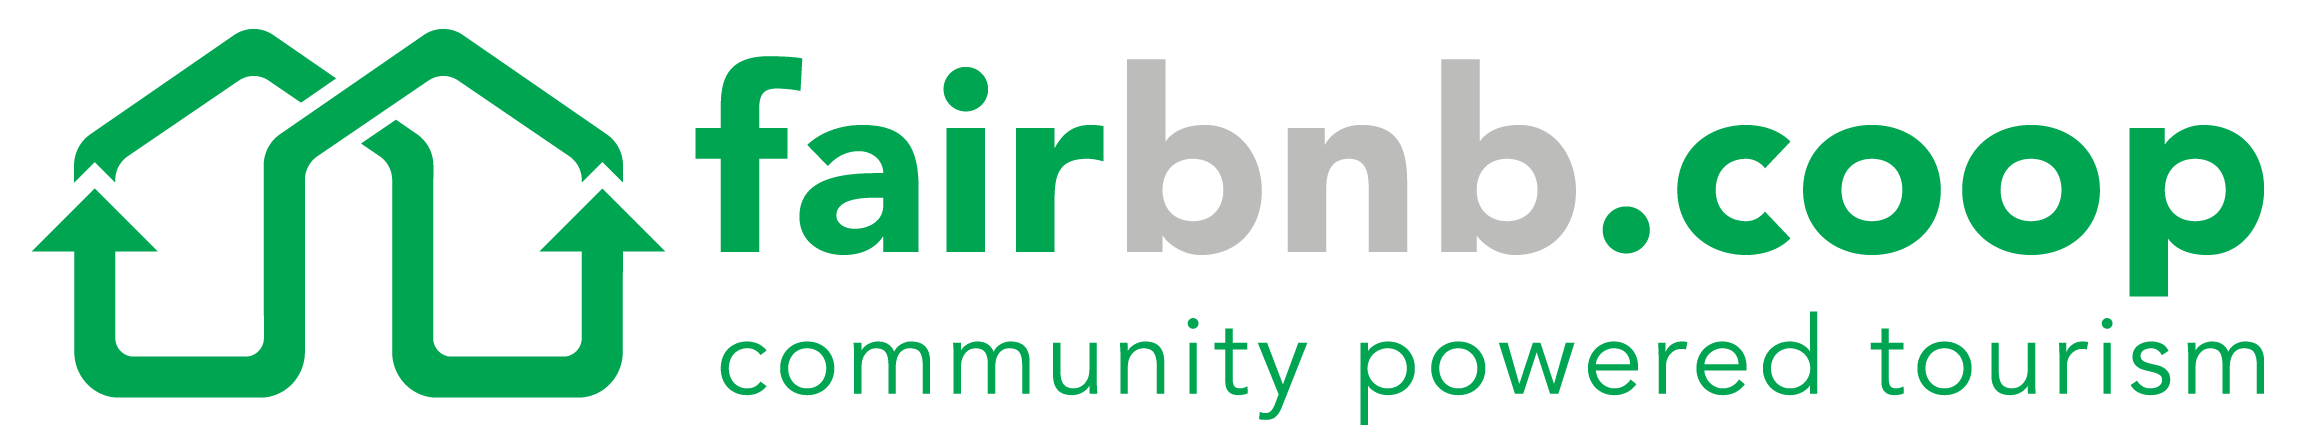 Fairbnb.coop - Community powered tourism